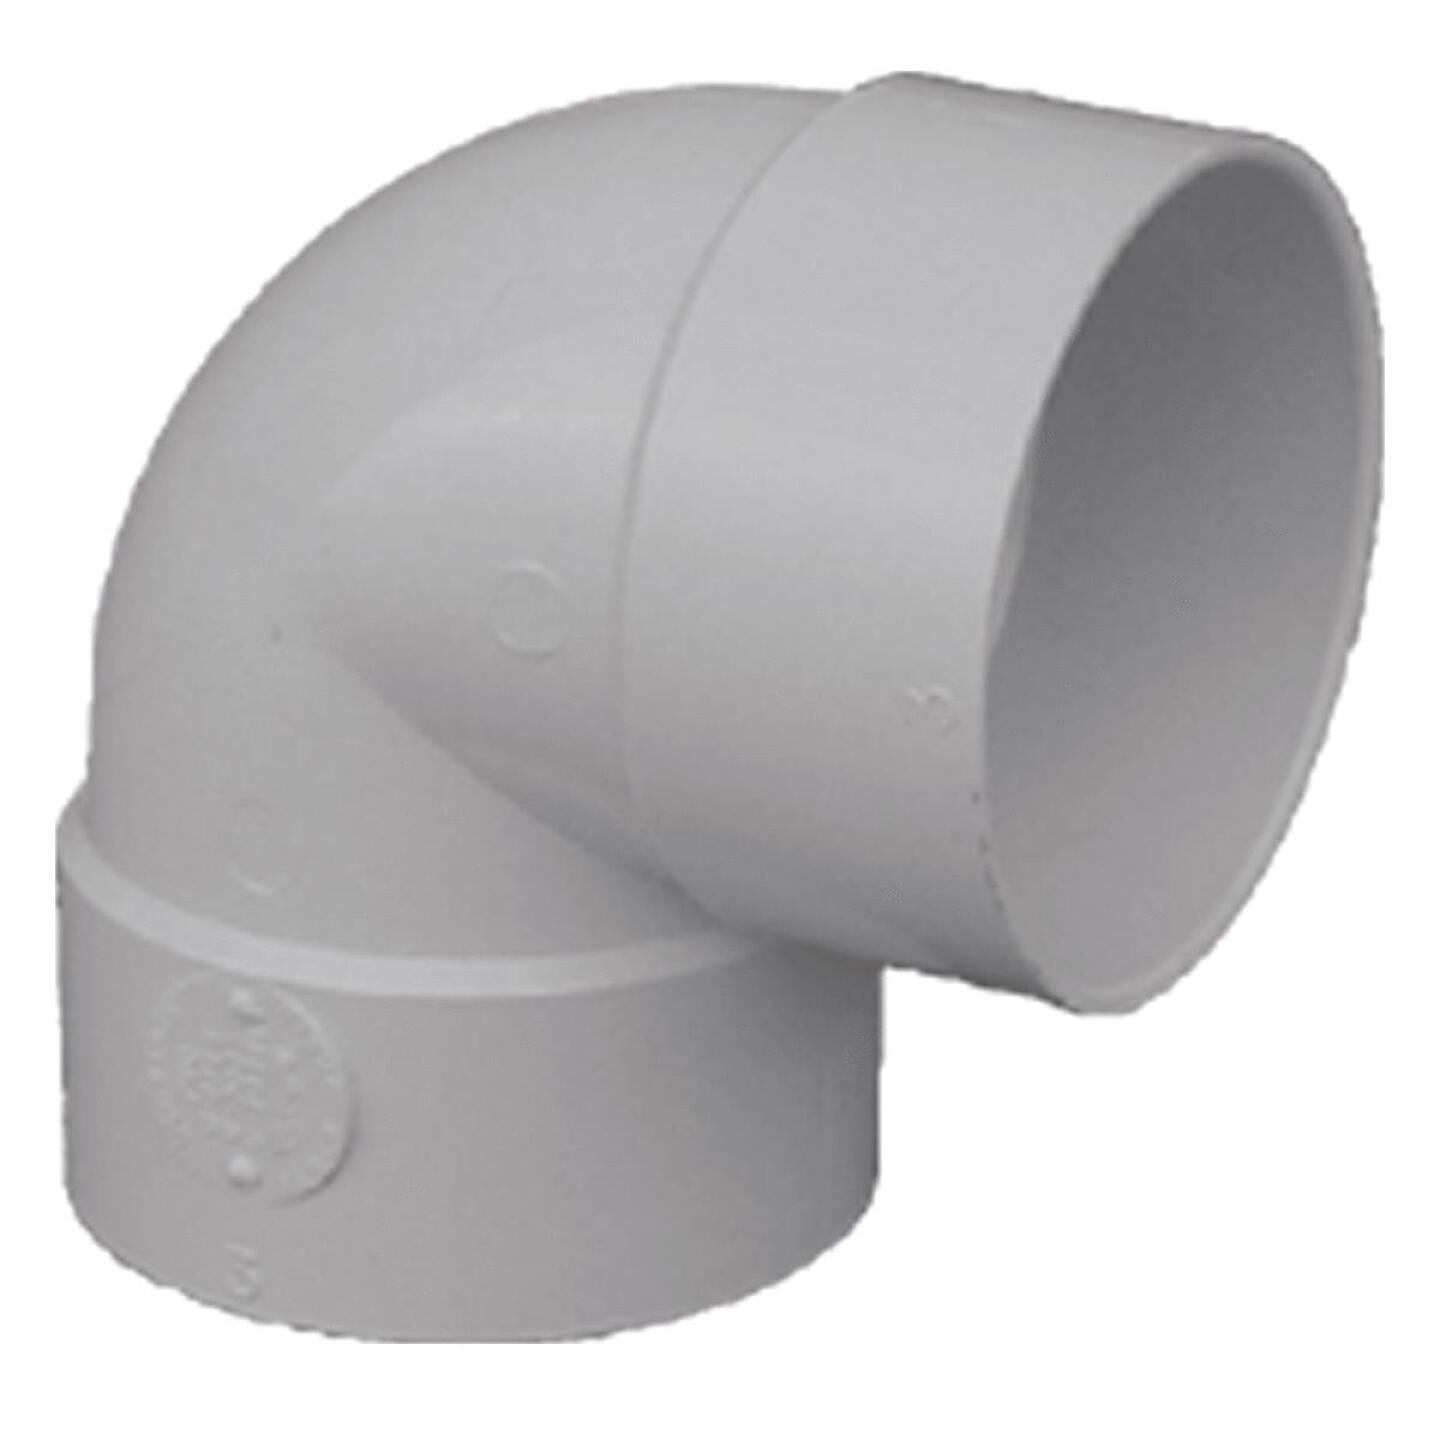 IPEX Canplas SDR 35 90 Degree 4 In. PVC Sewer and Drain Short Turn Elbow (1/4 Bend) Image 1